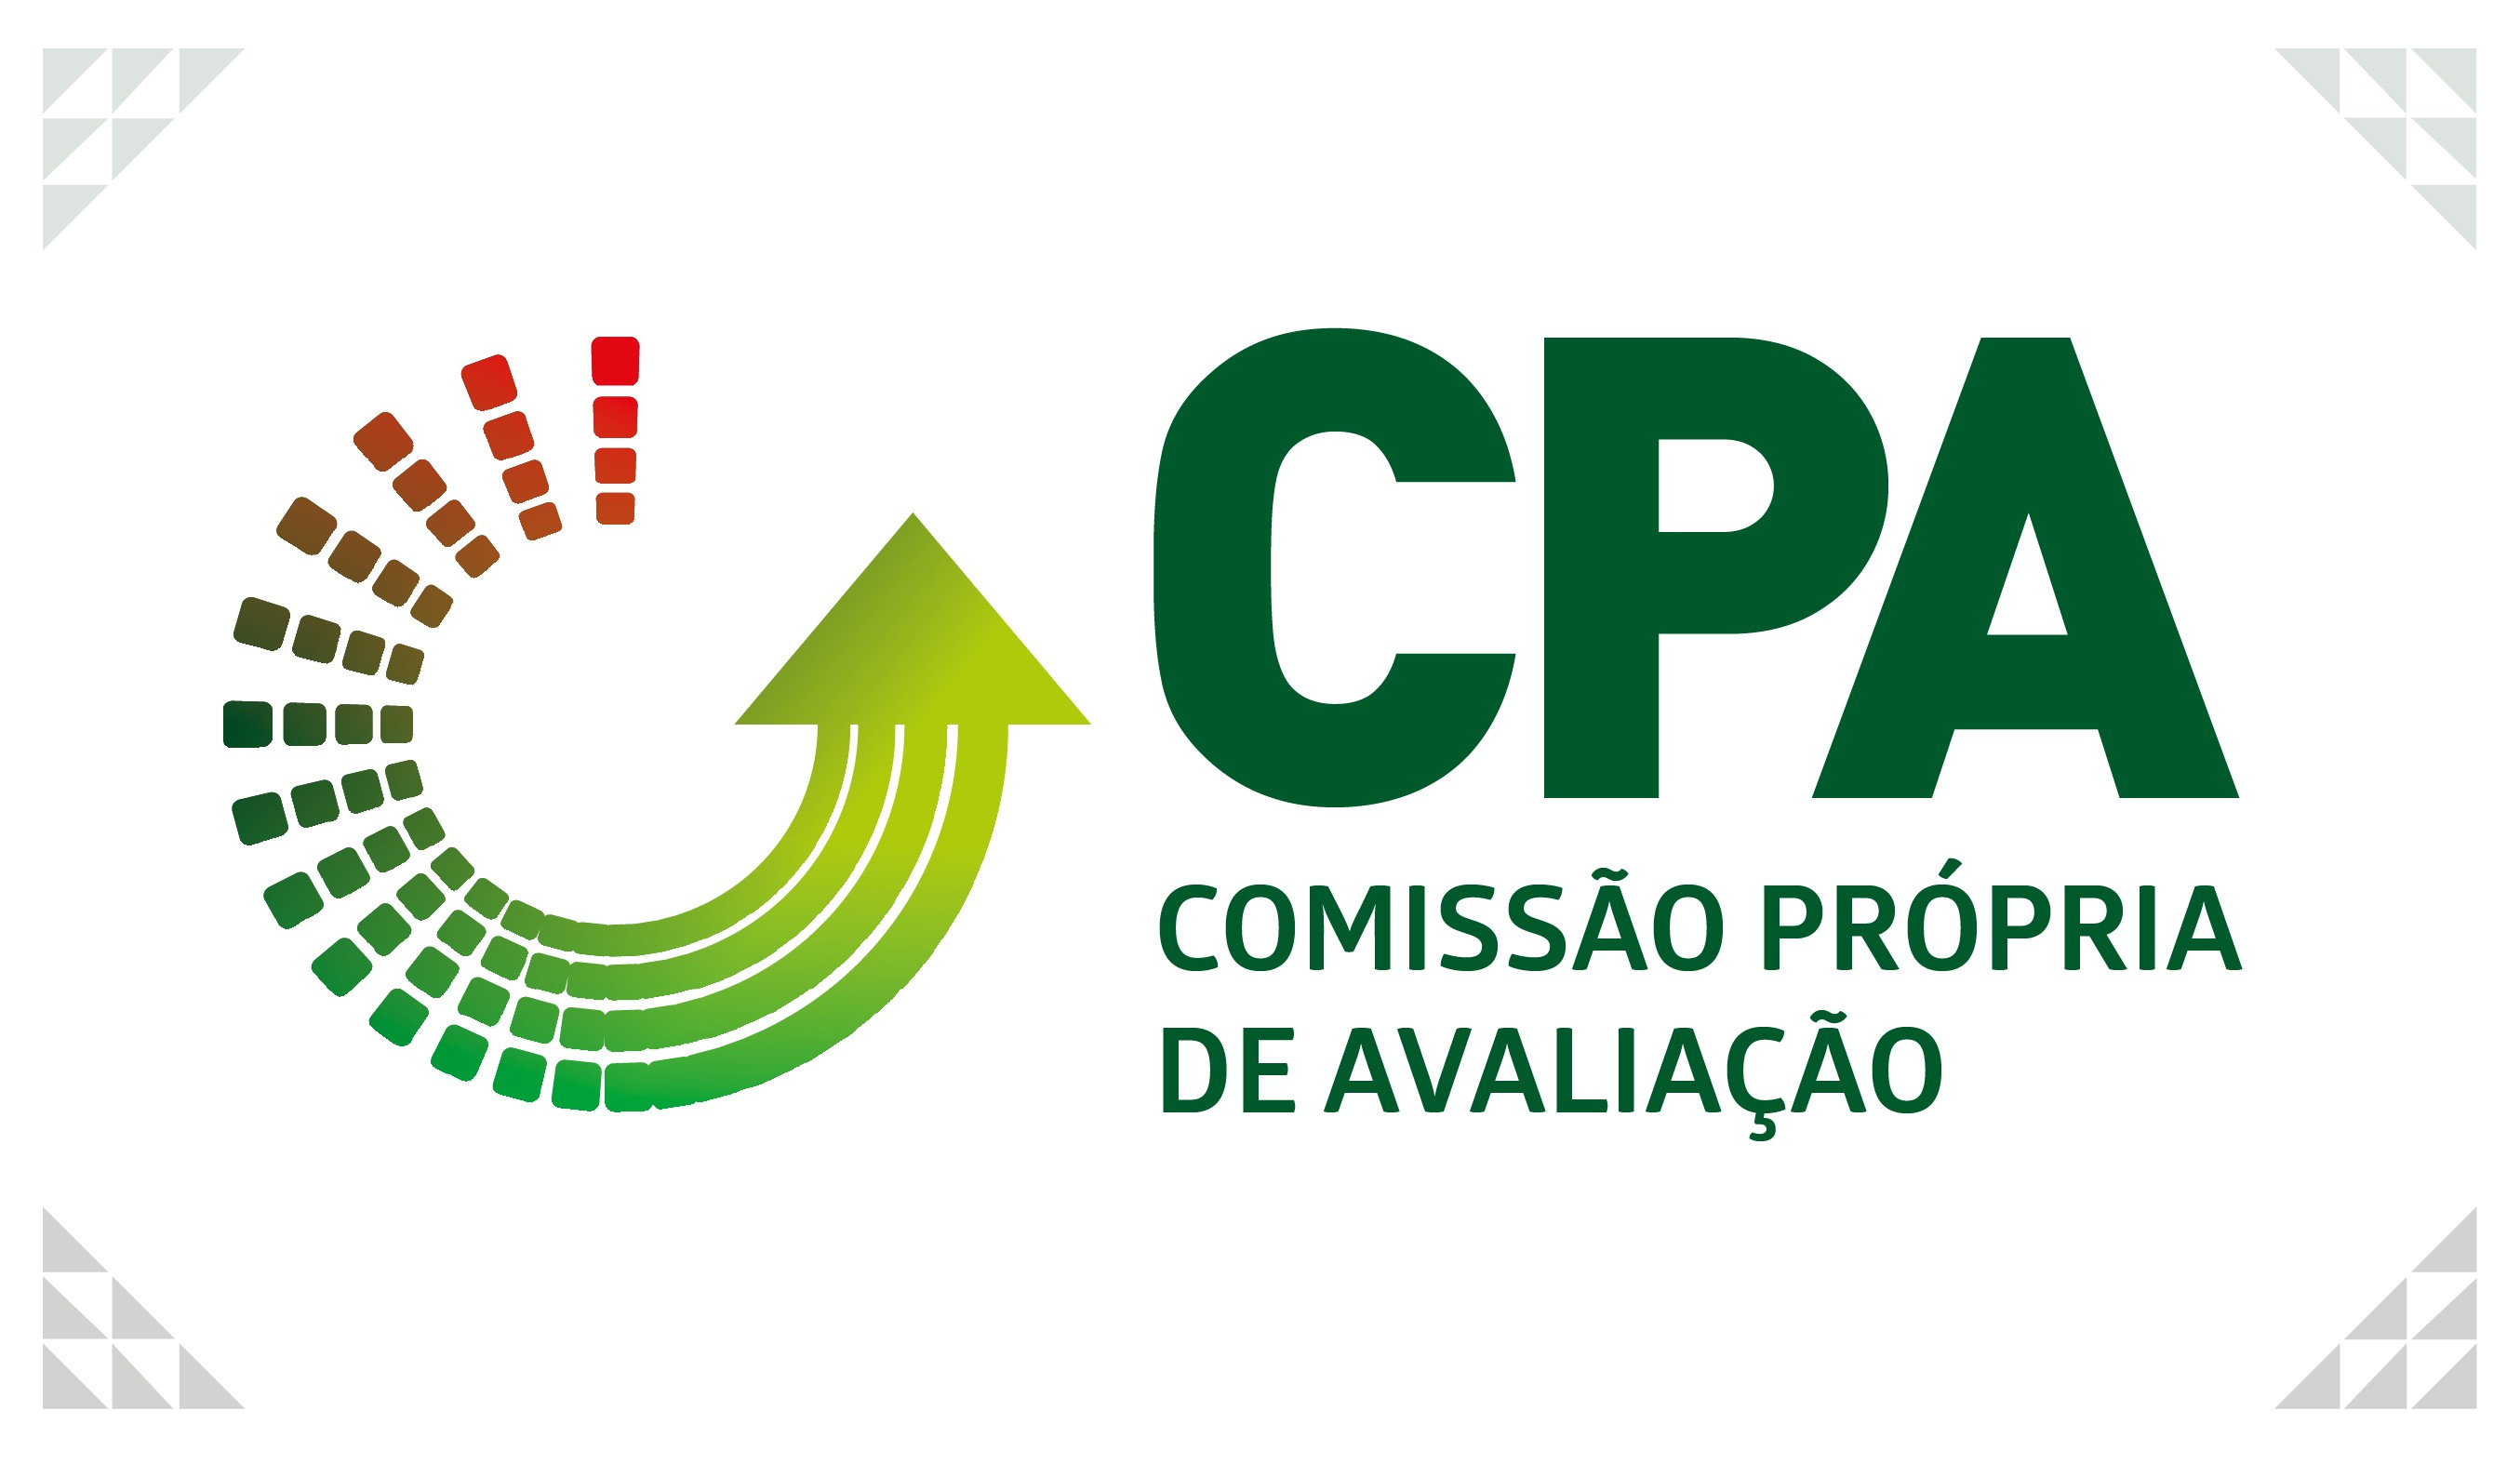 Calendario 2019 Do Brasil Más Reciente Instituto Federal Goiano Of Calendario 2019 Do Brasil Más Reciente Instituto Federal Goiano